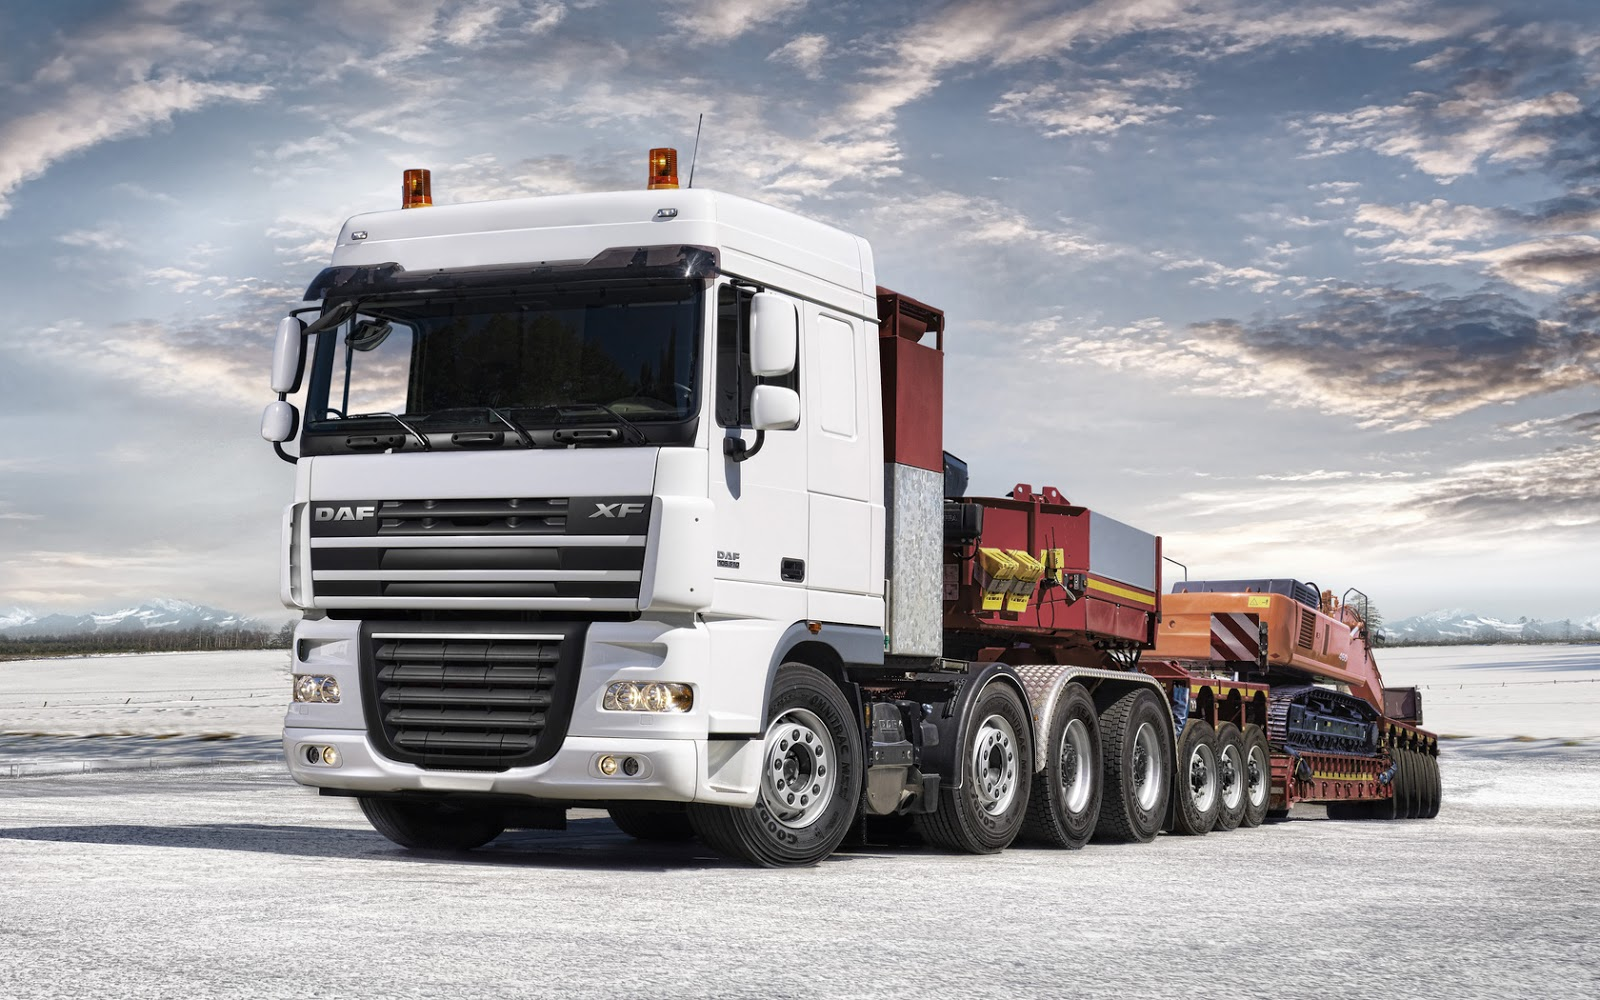 Wallpaper Name Daf Trucks Canada Best Wallpapers Best Resolution 1600x1000